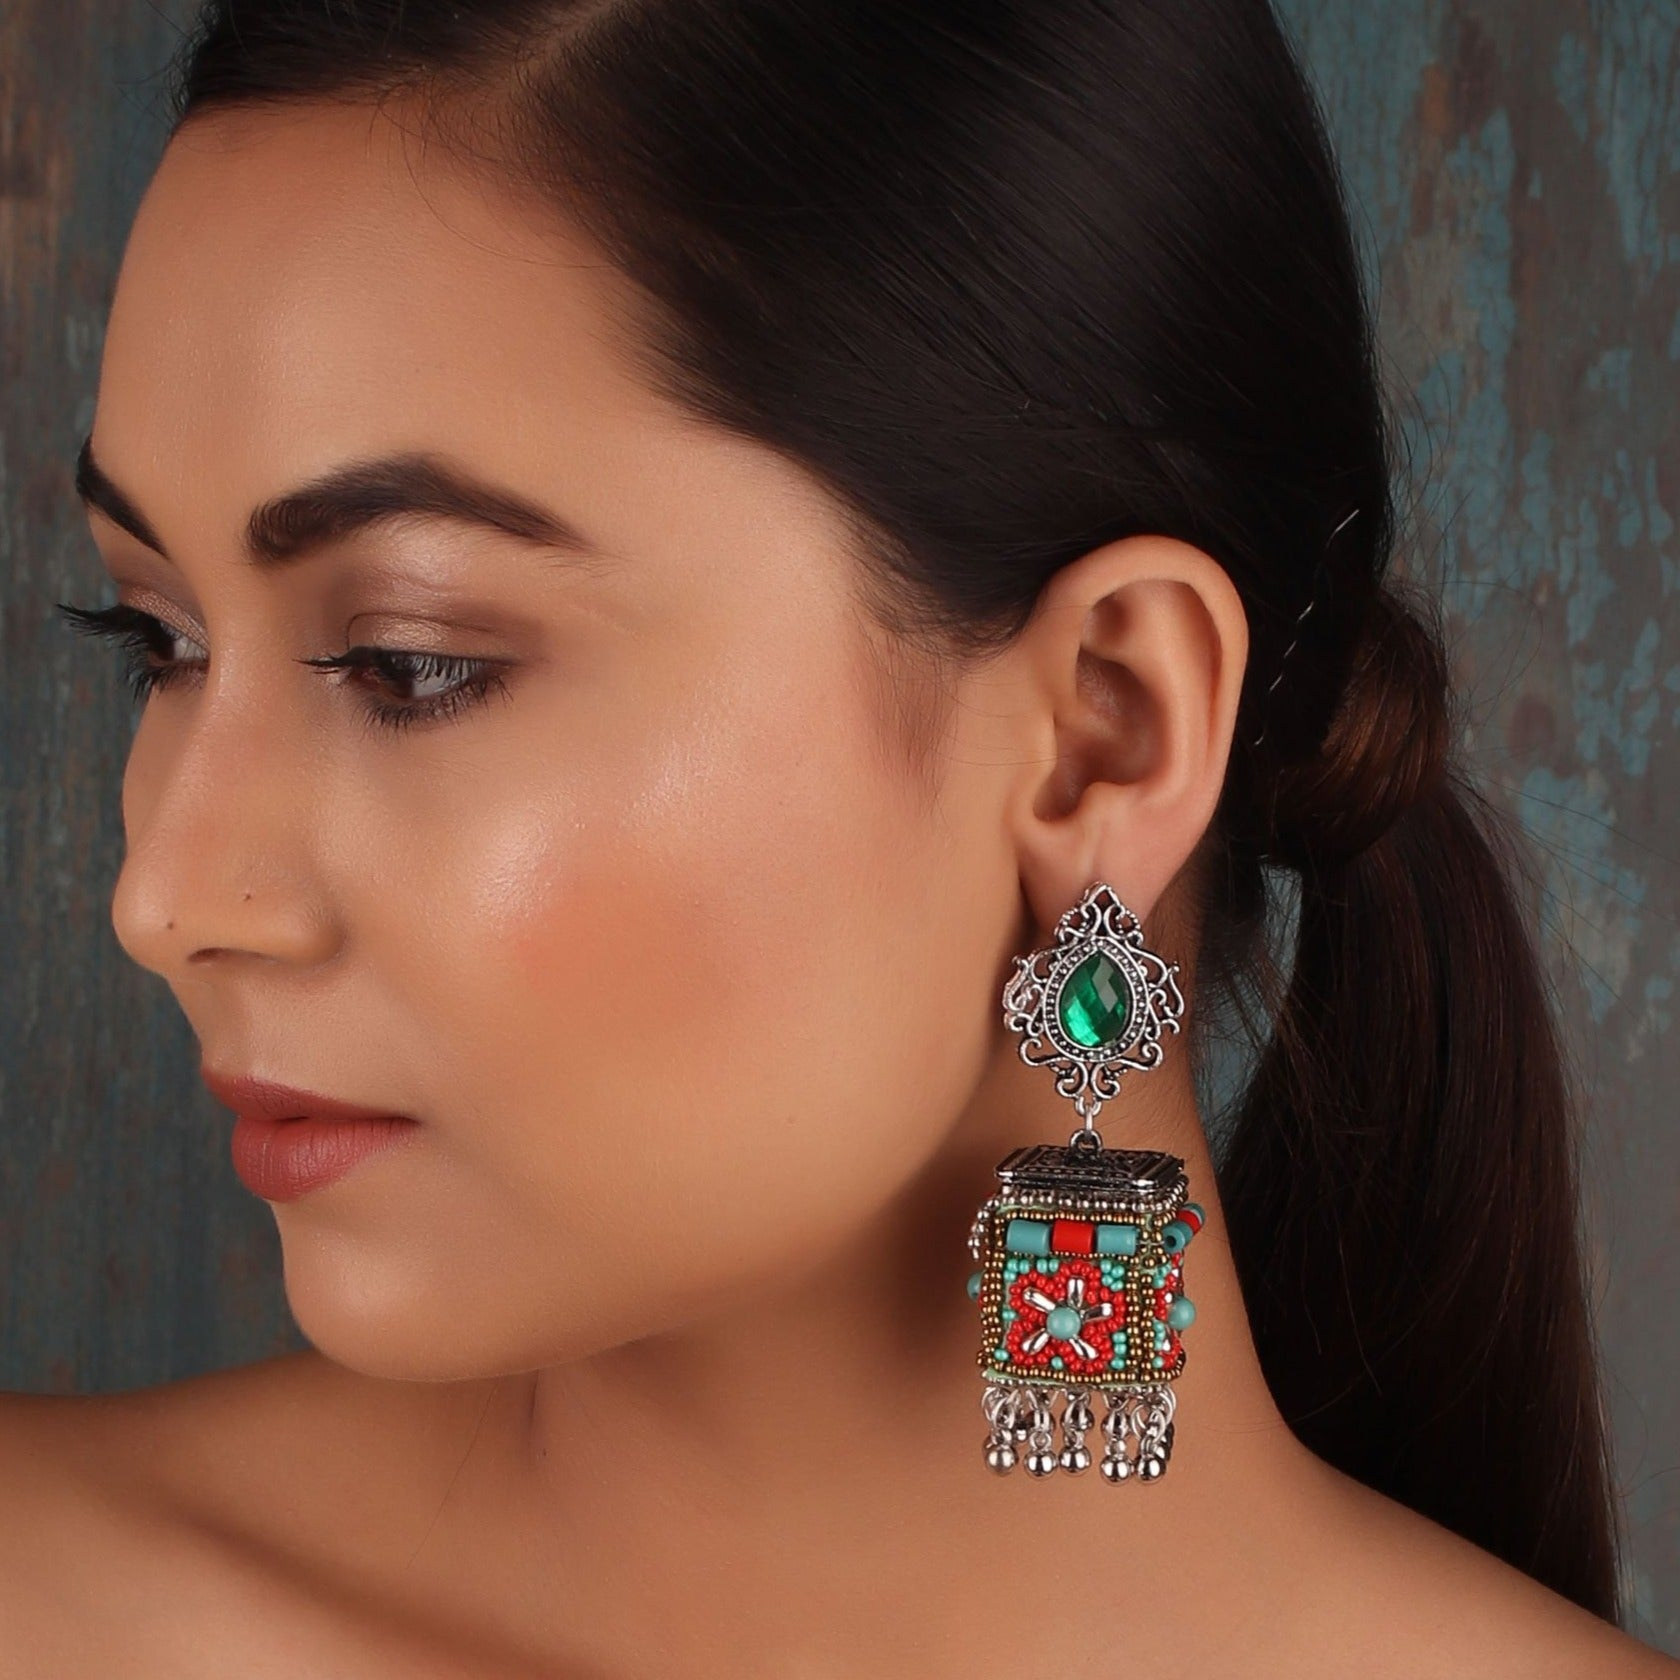 Earrings,The Dazzling Stone Beaded Earring in Red & Green - Cippele Multi Store